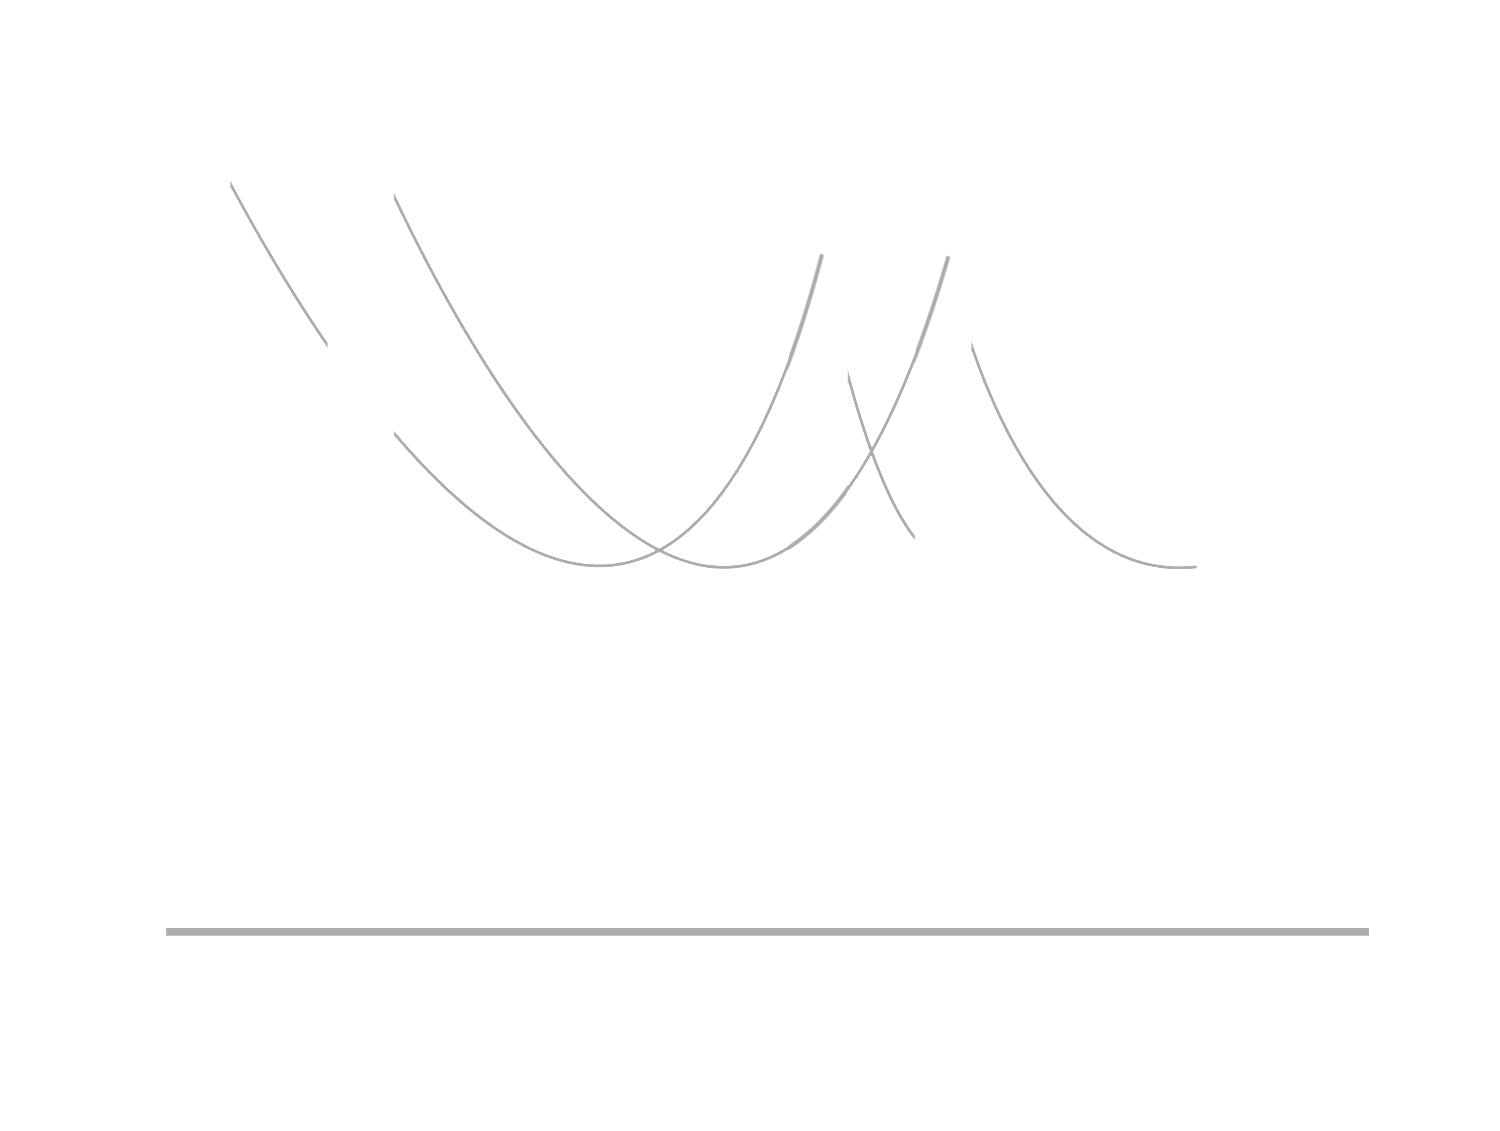 Hudson Heights Entertainment